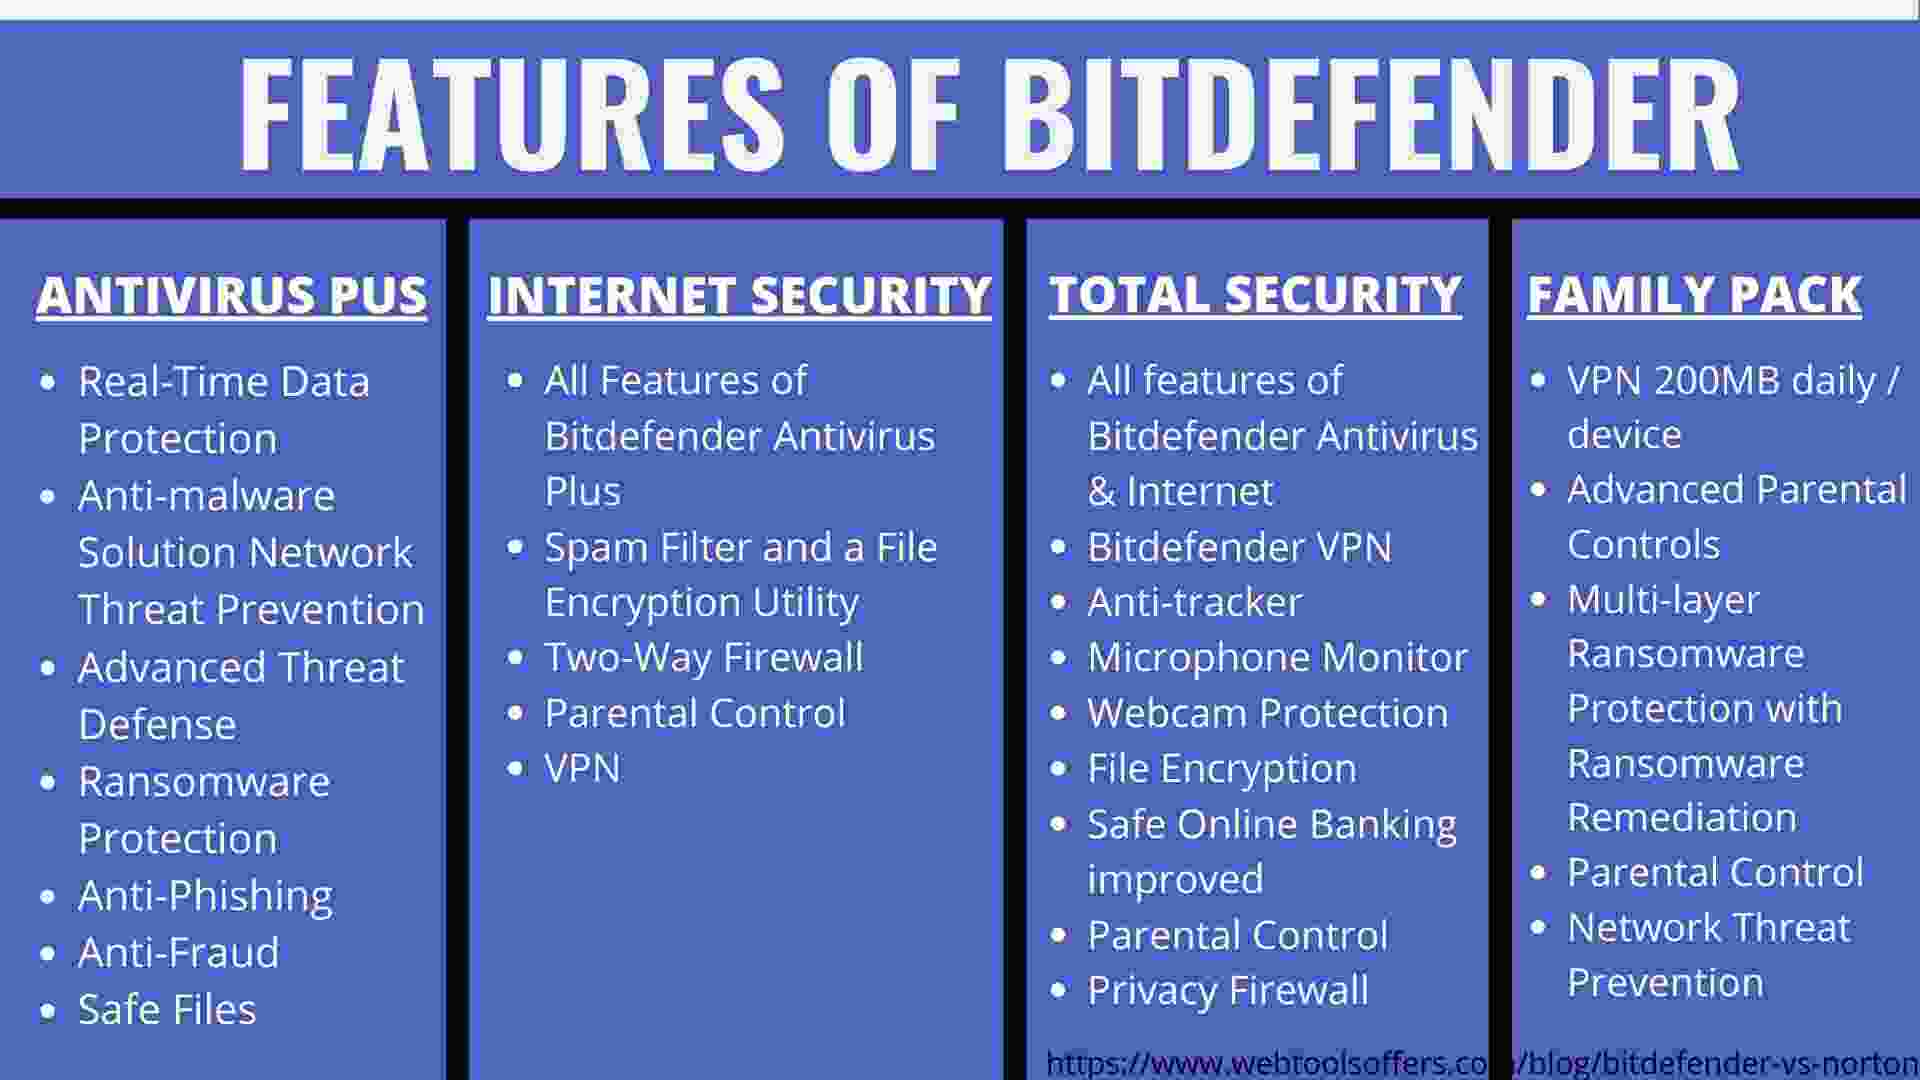 Features of Bitdefender